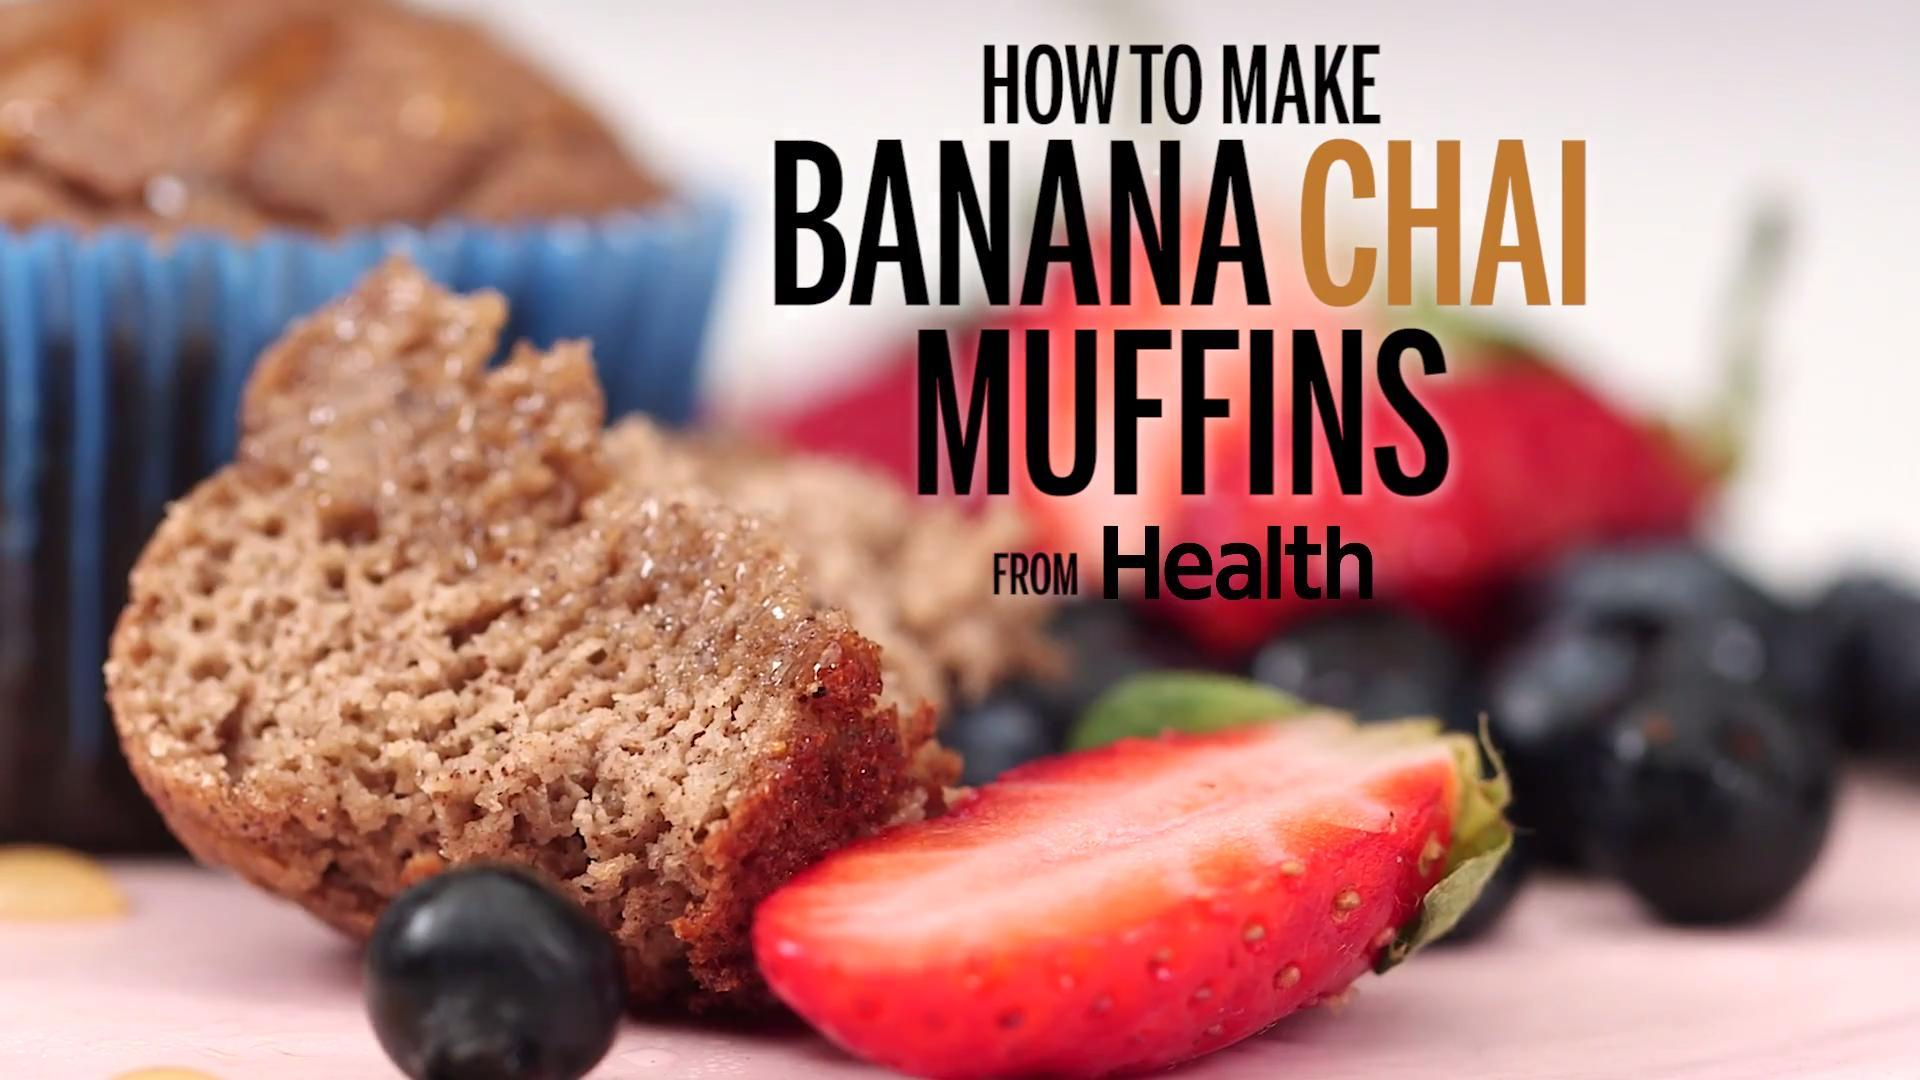 5 Healthy Recipes That Are Going To Fuel You For The Week Ahead | HuffPost Life